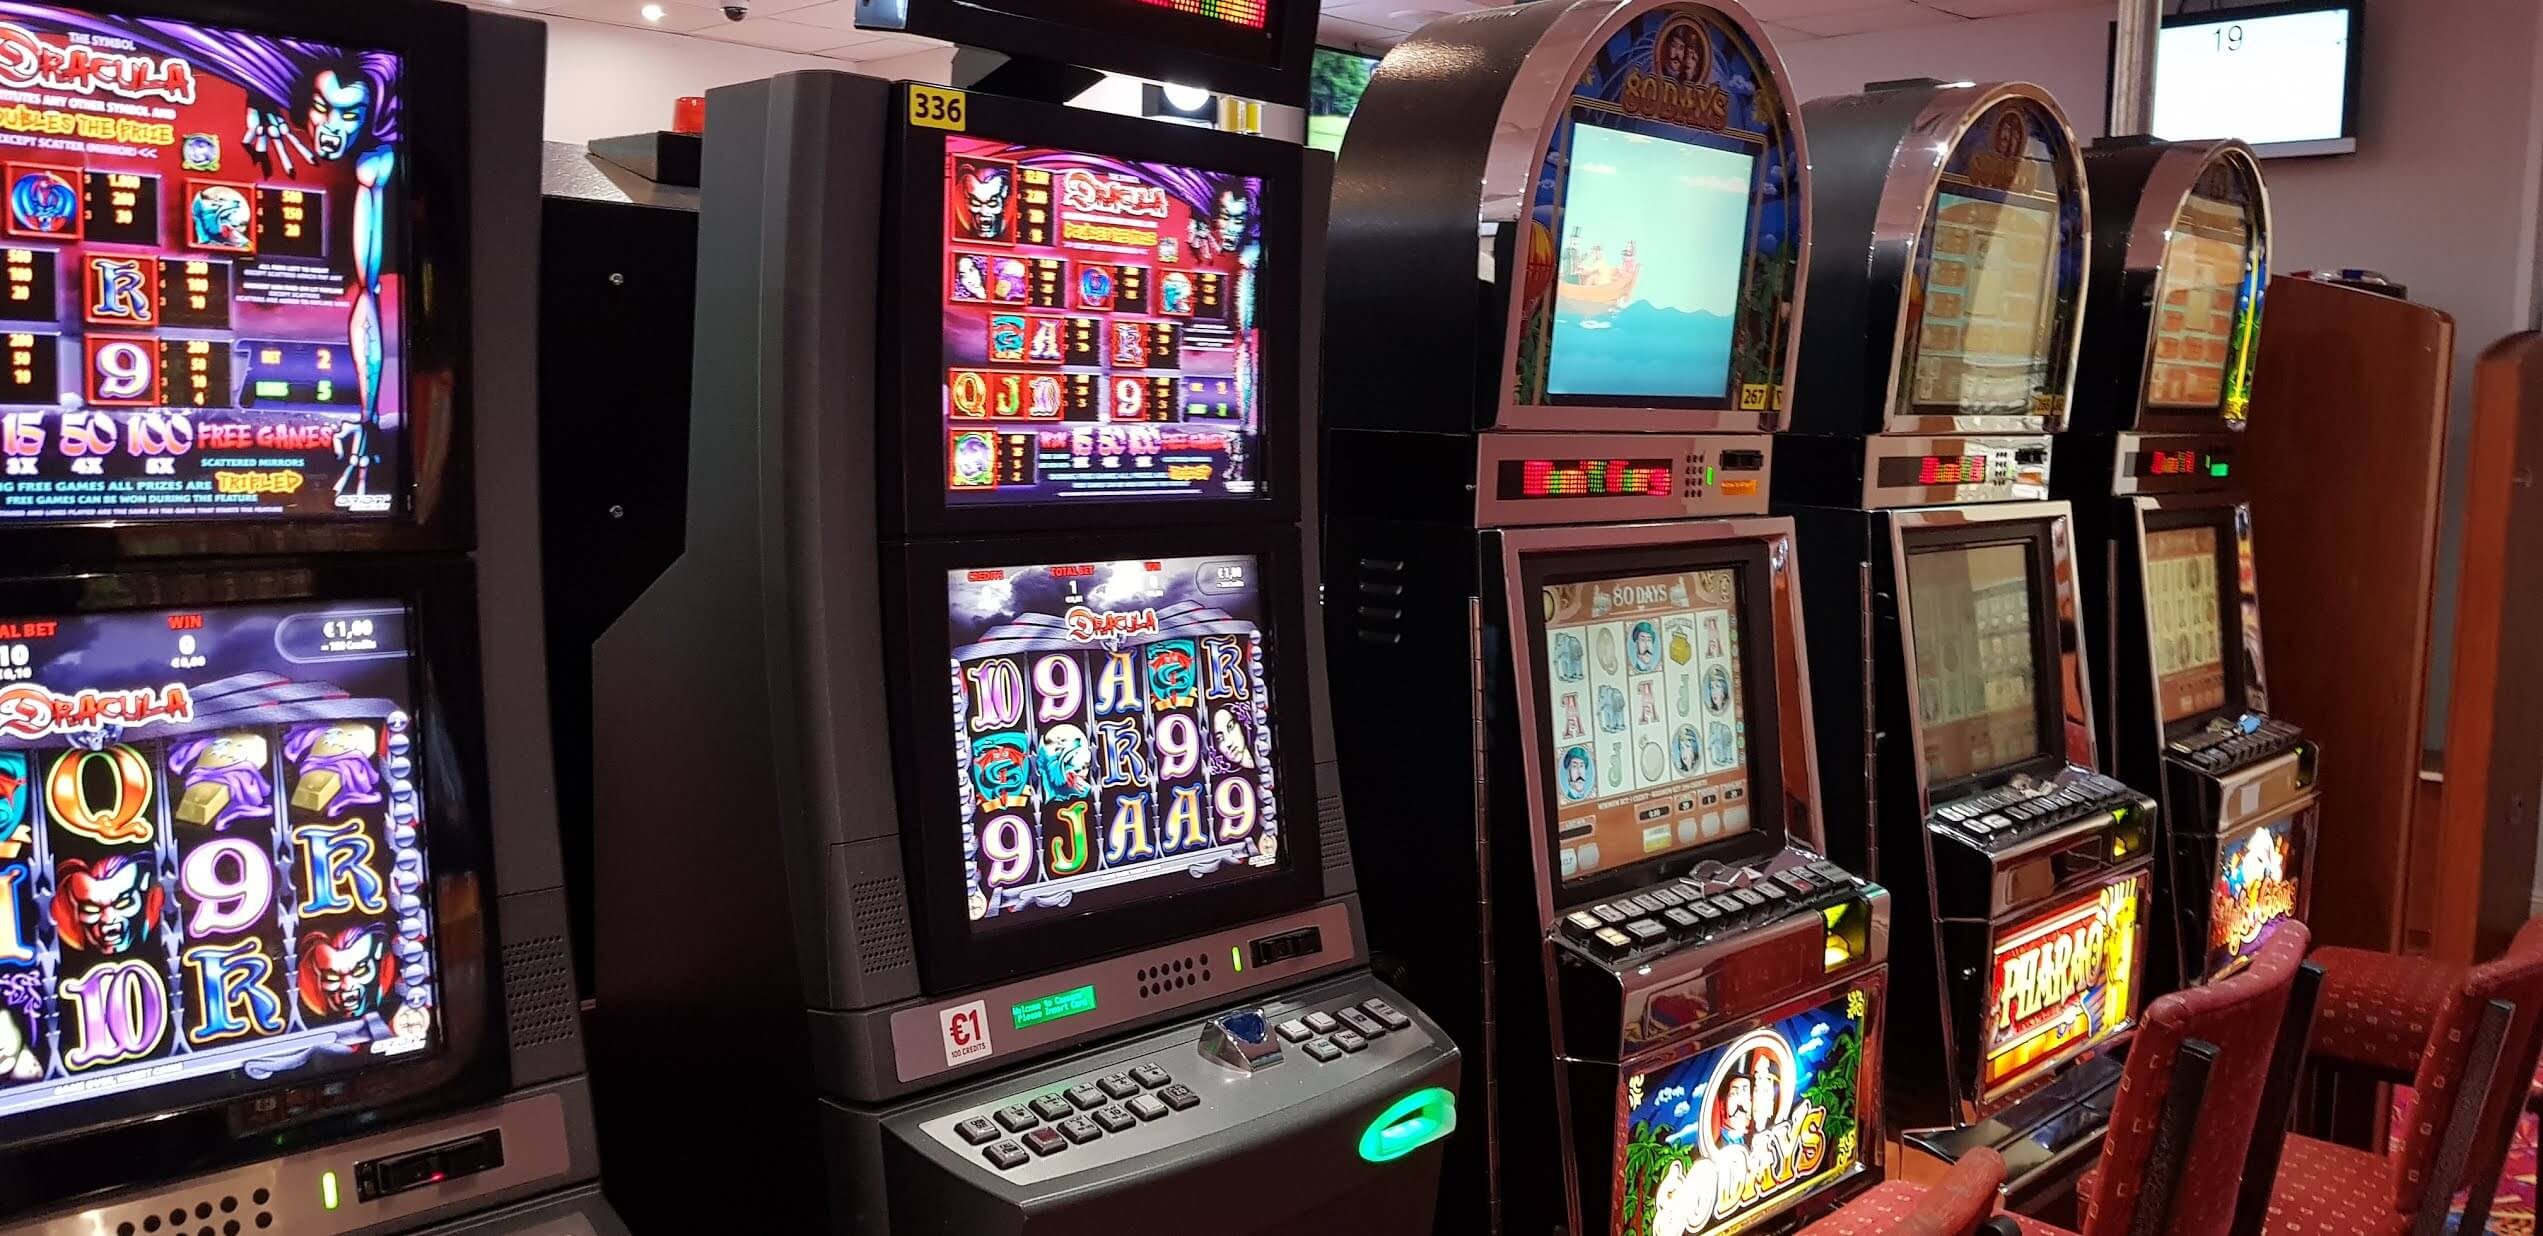 Download SCR888 Slot For Android APK, IOS | Online Casino Malaysia